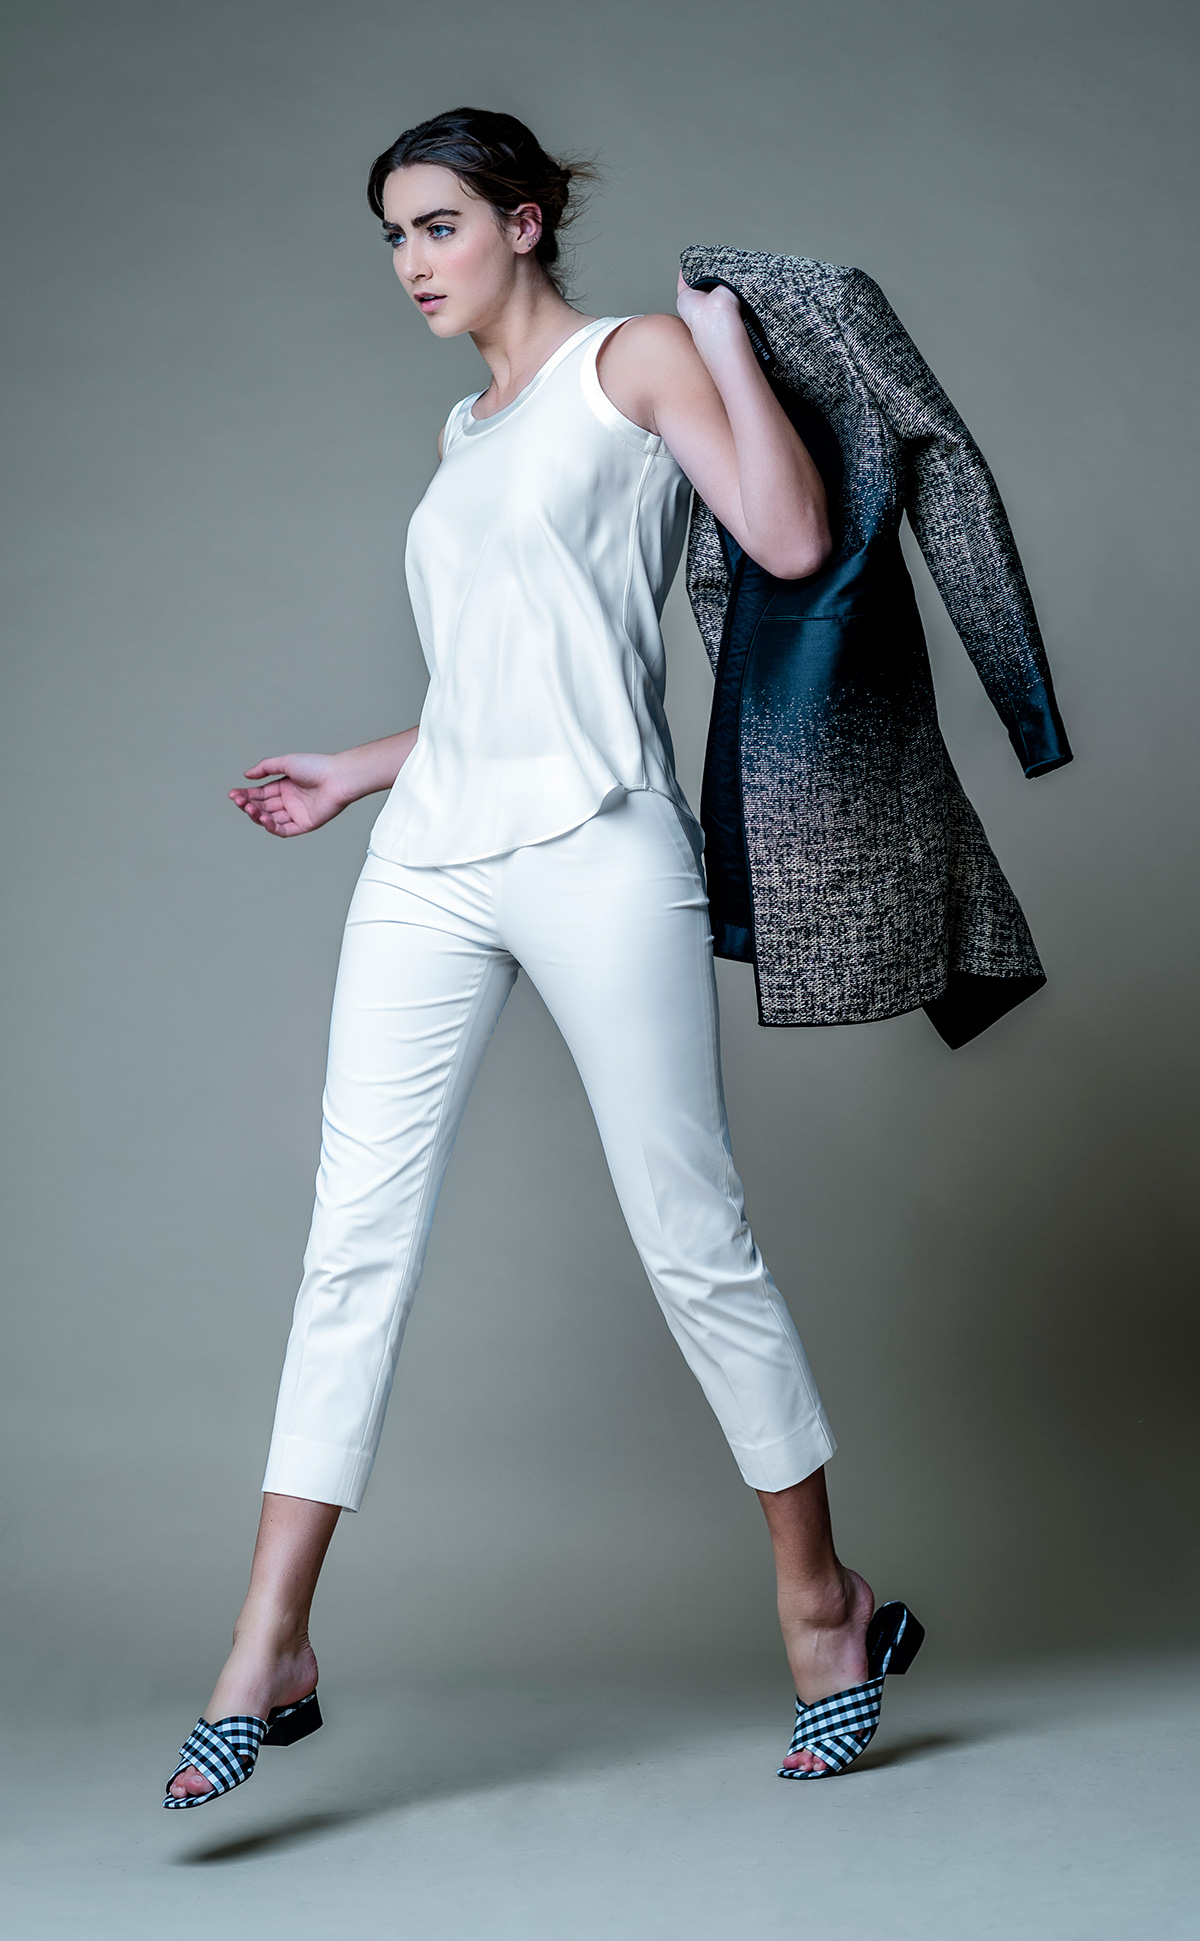 White silk tank top, white denim trousers, black & white sandals and black embroidered jacket all by Lafayette 148 New York @ Brickell City Centre.